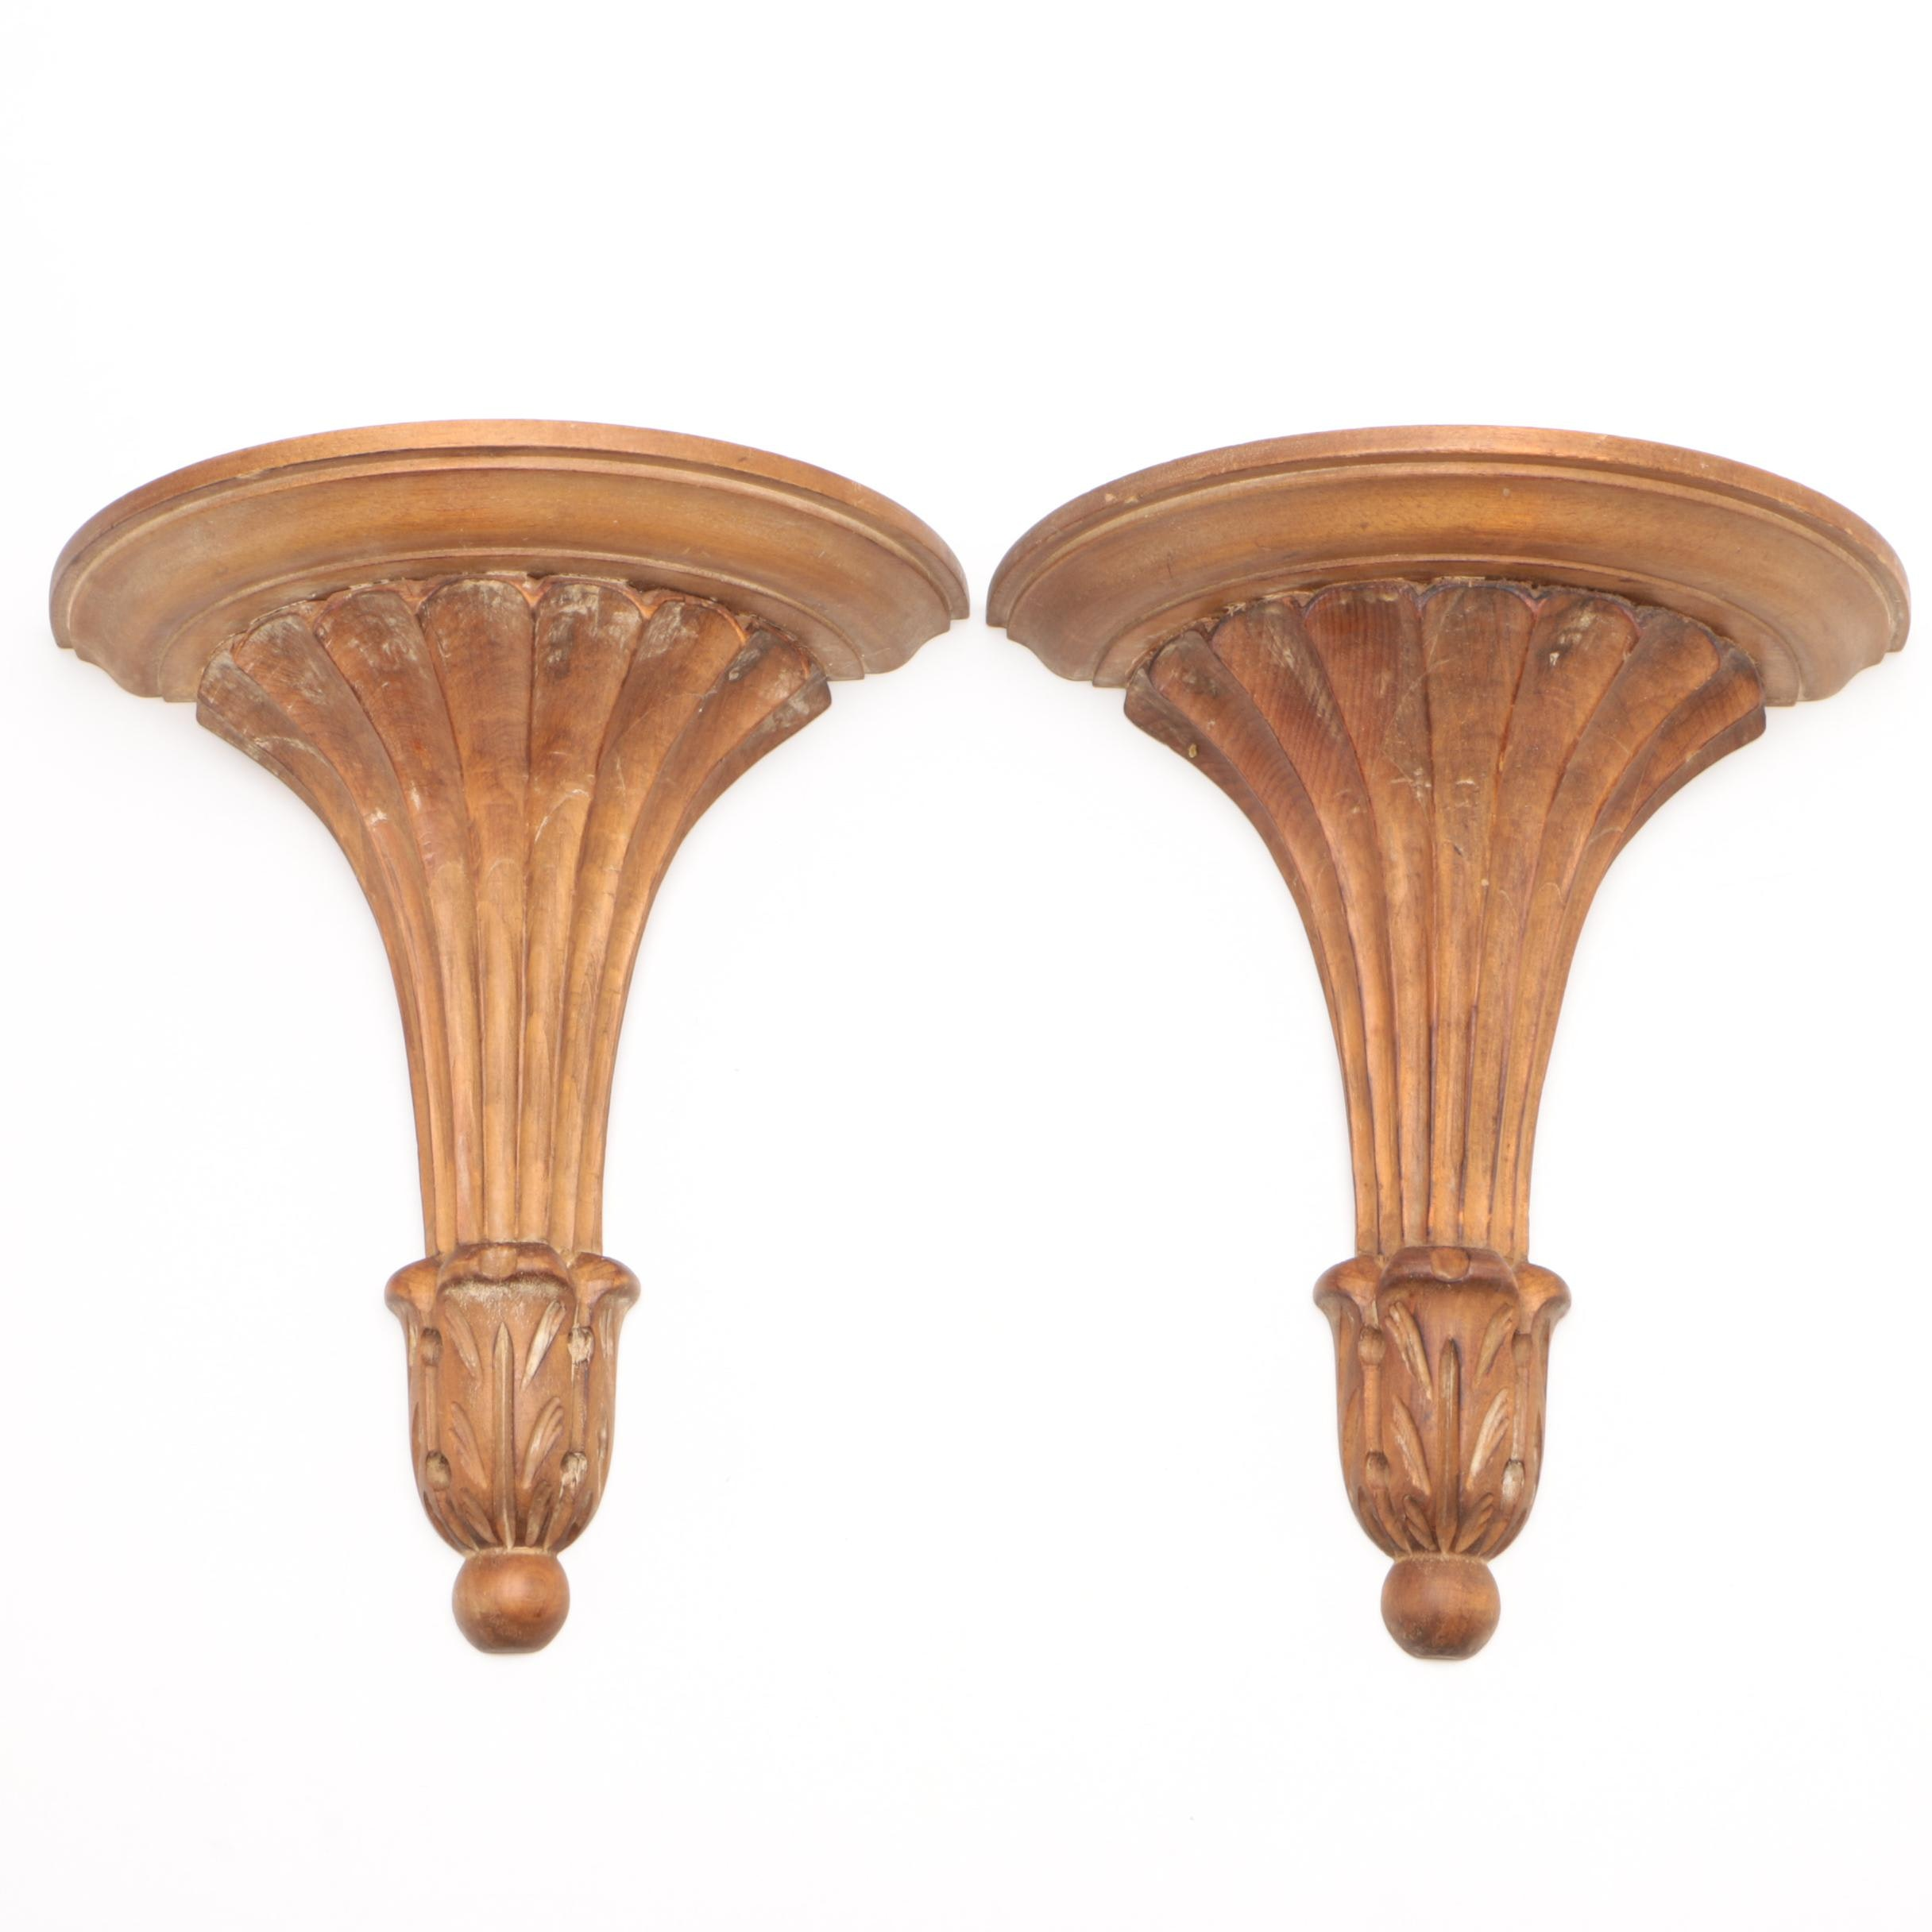 Pair of Italian Neoclassical Carved Wood Sconces, Mid-Century